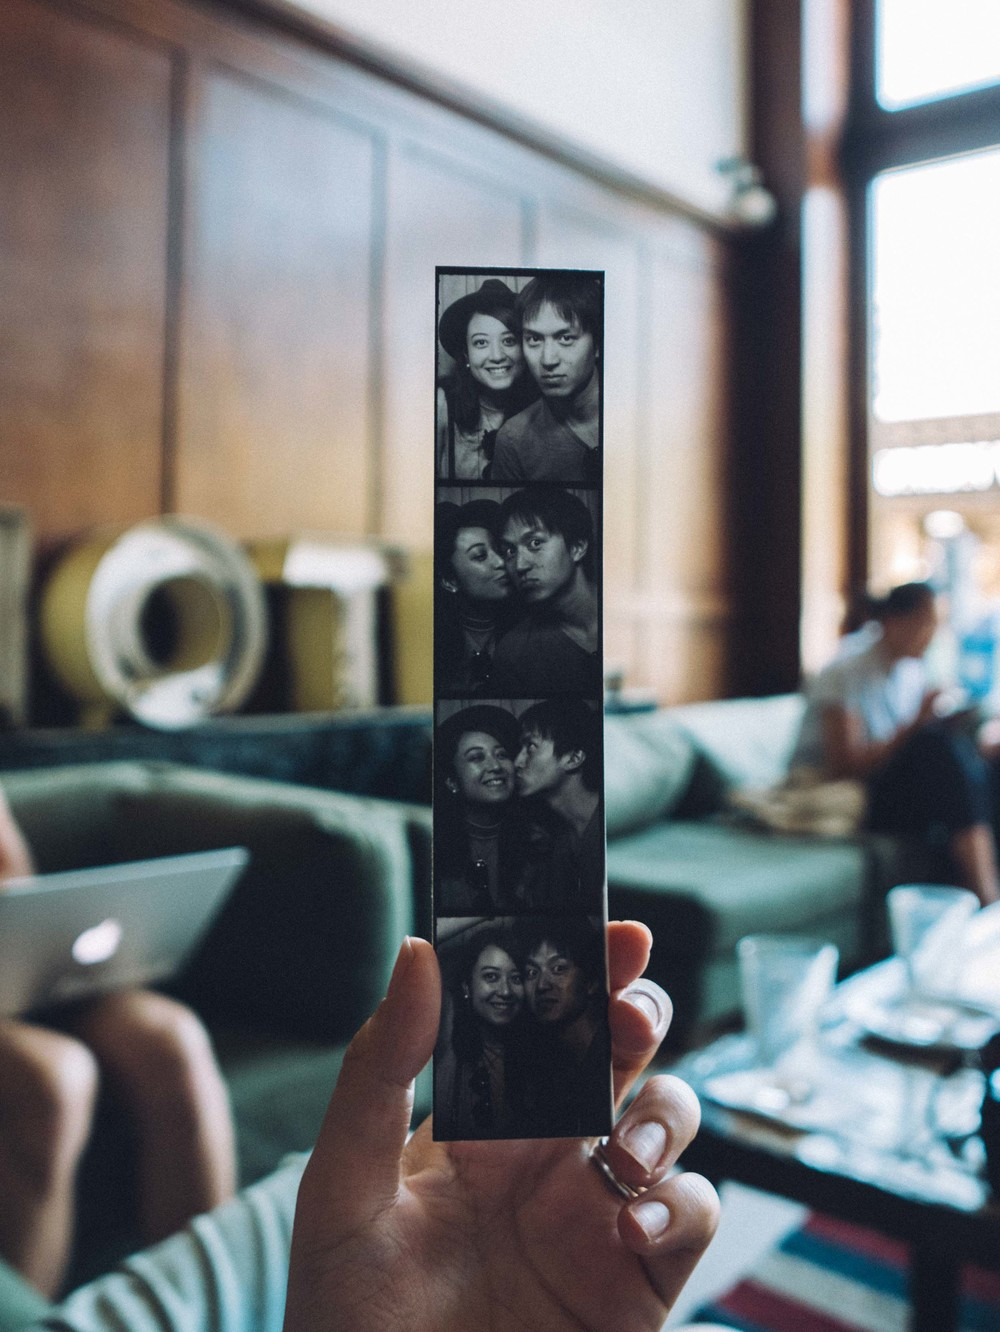 Take a retro photobooth photo in the Ace Hotel Portland lobby